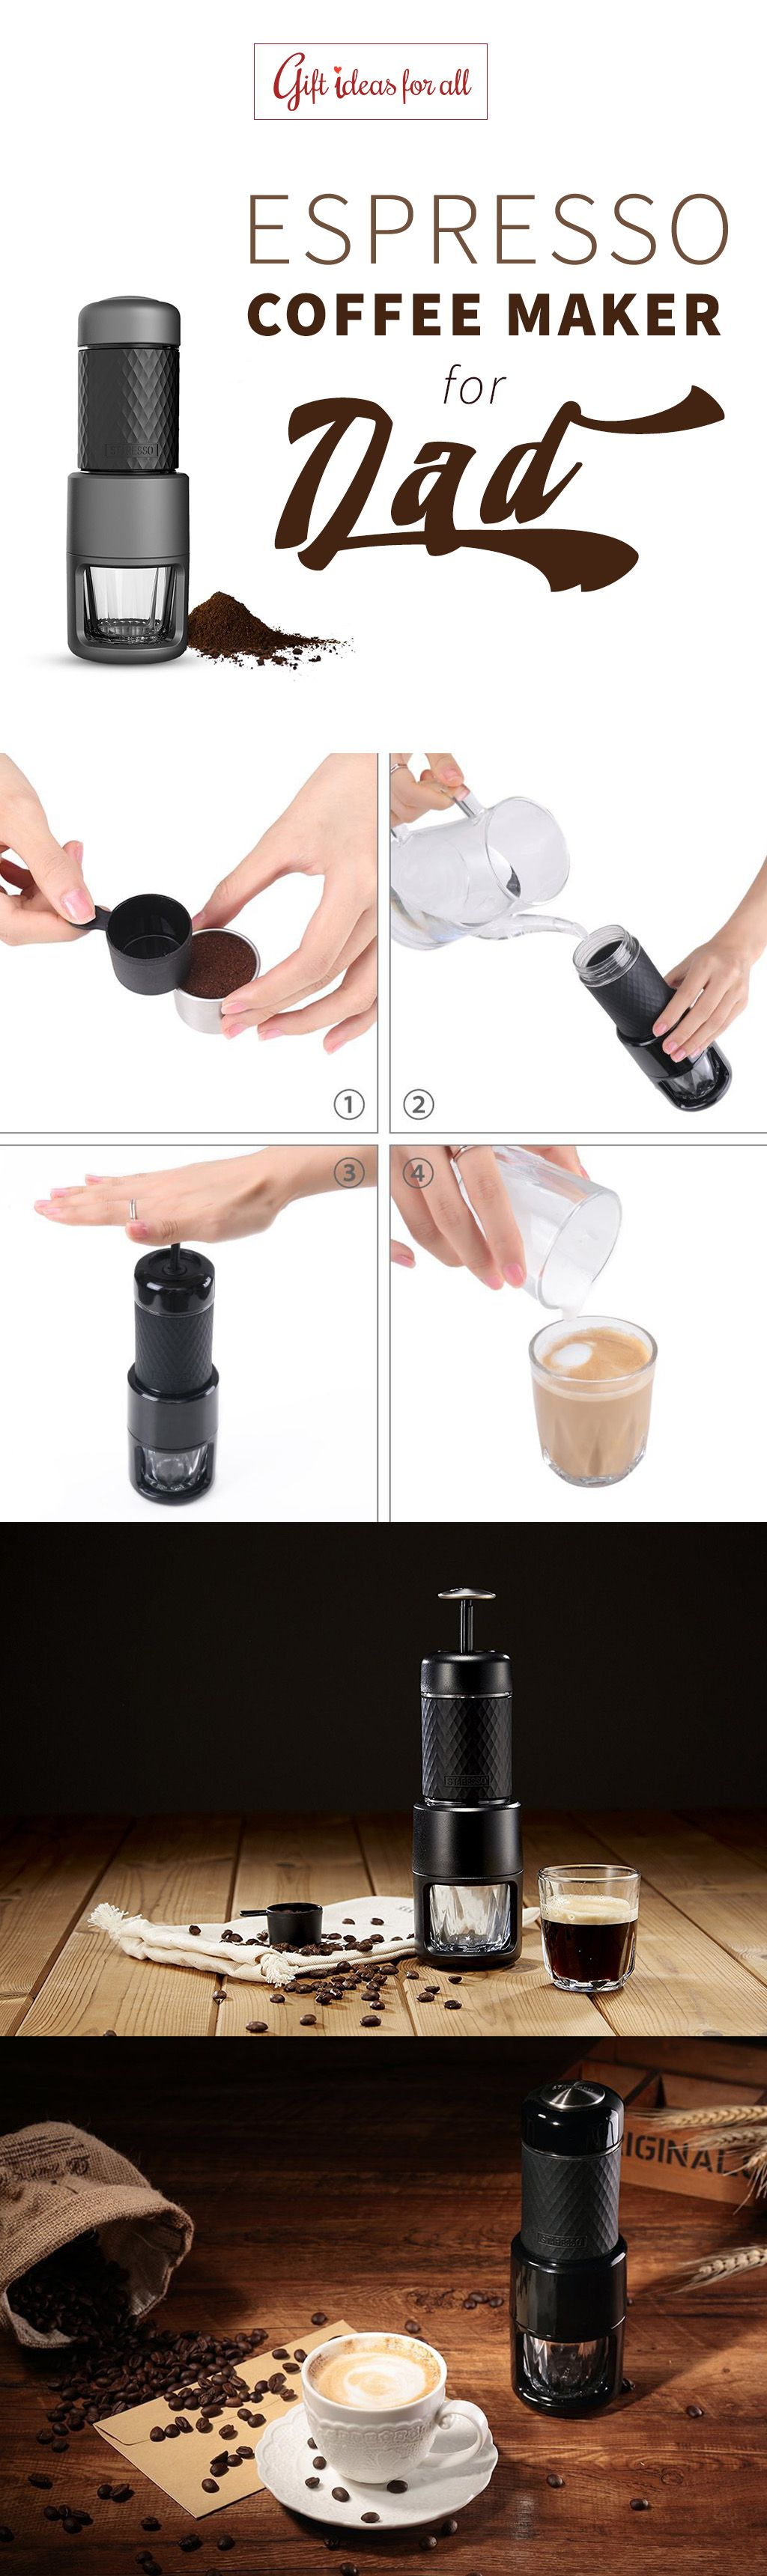 Award Winning Portable Espresso Coffee Maker For Your Dads Upcoming Birthday